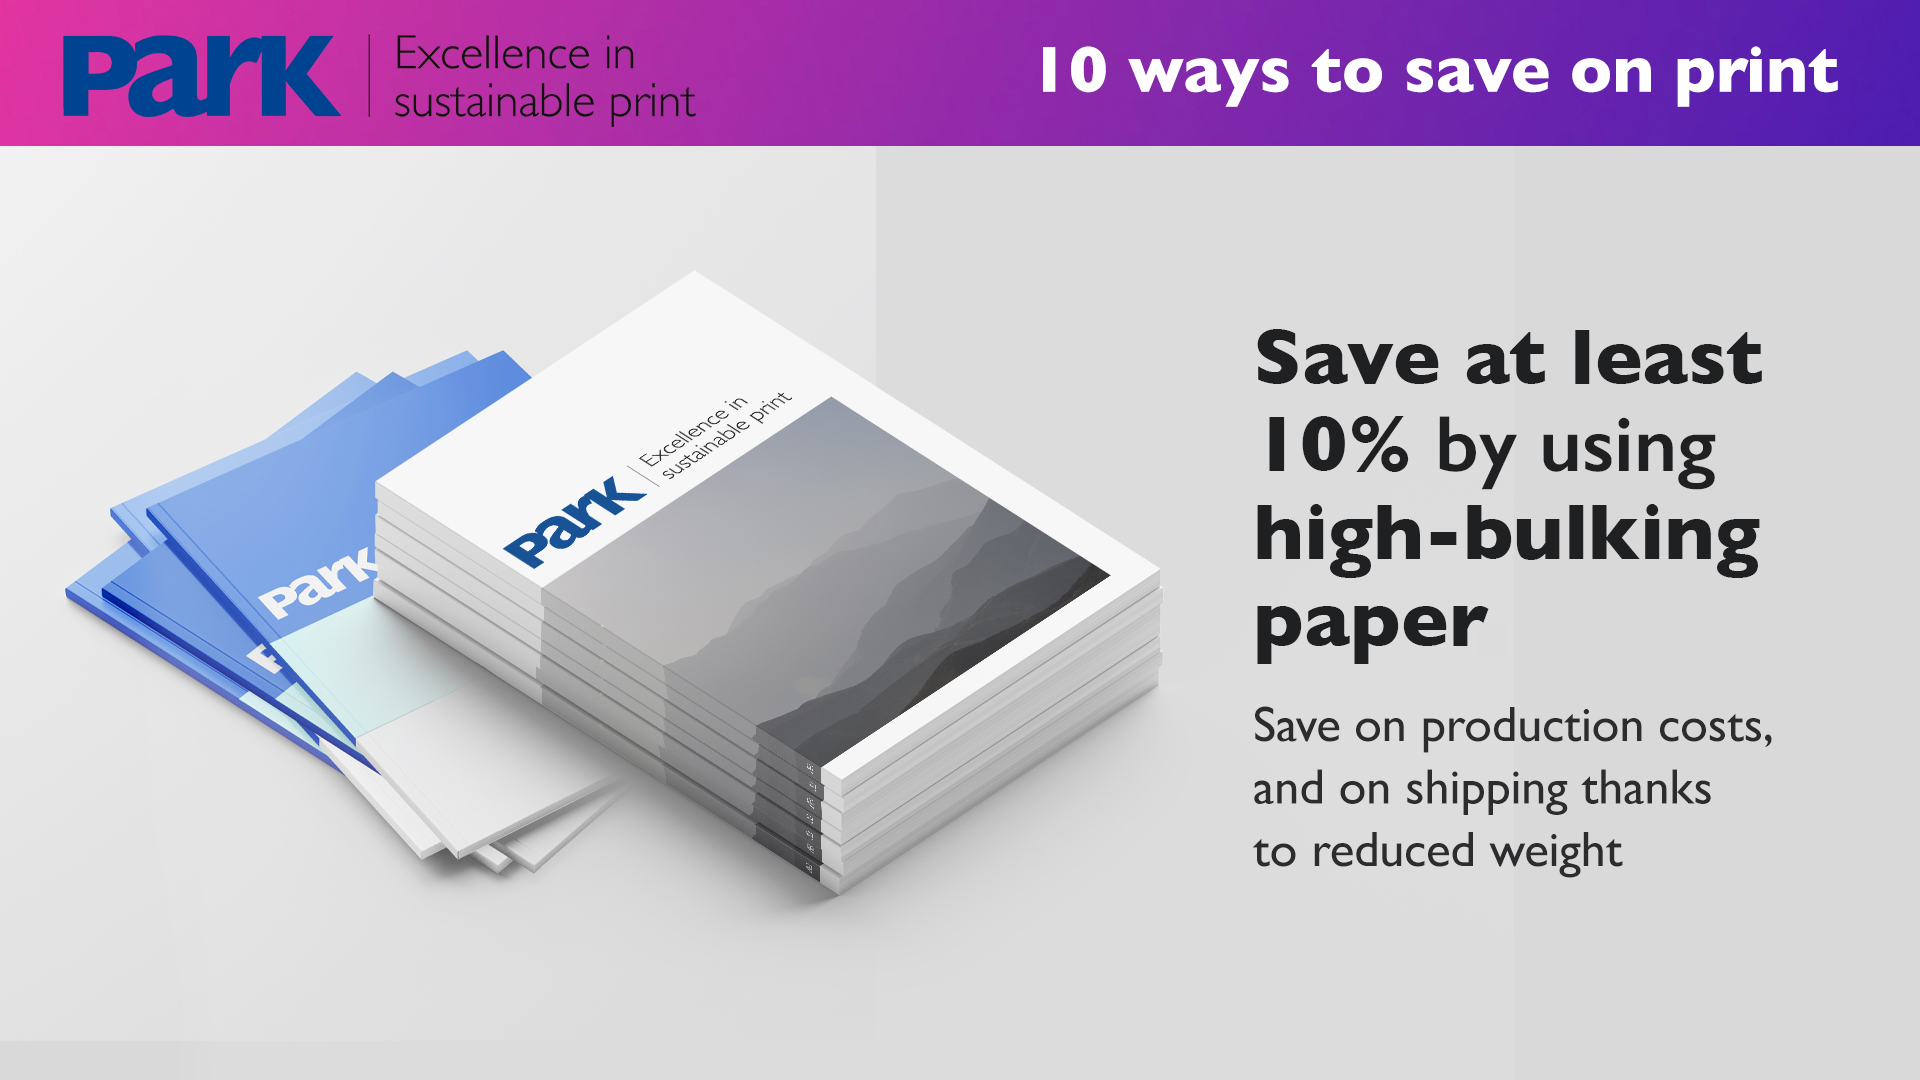 High-bulking paper savings